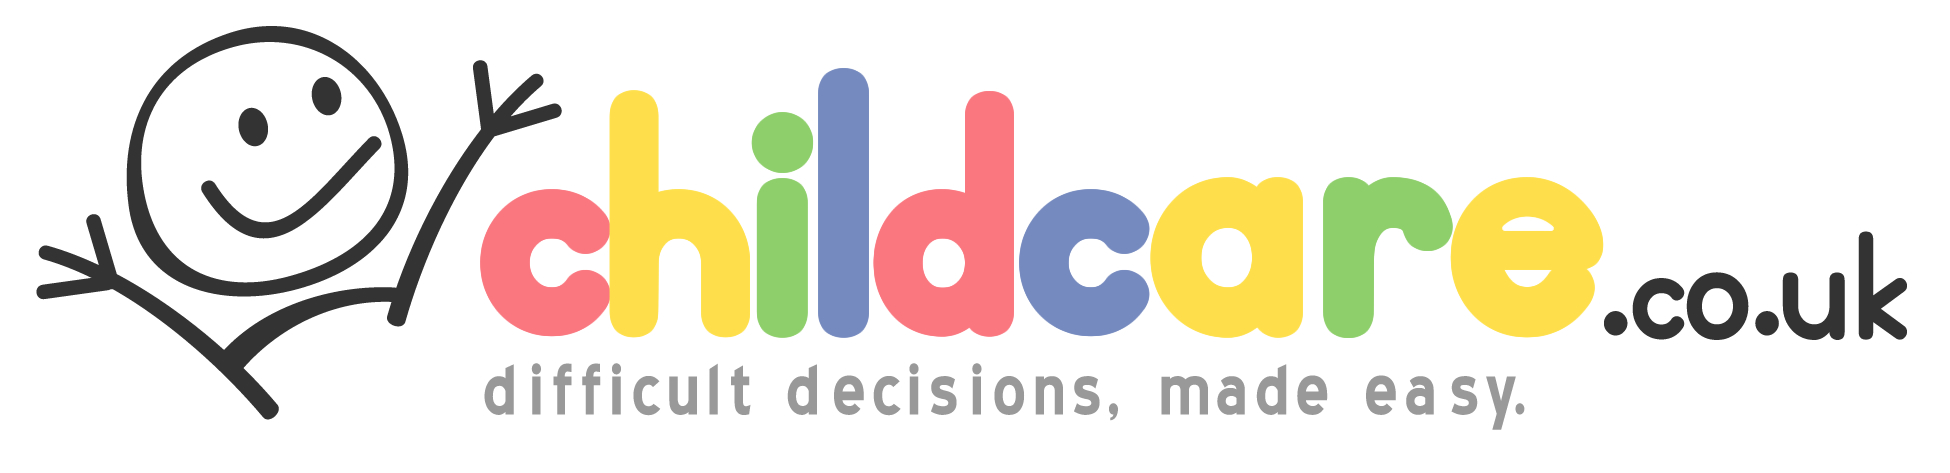 Review us on childcare.com